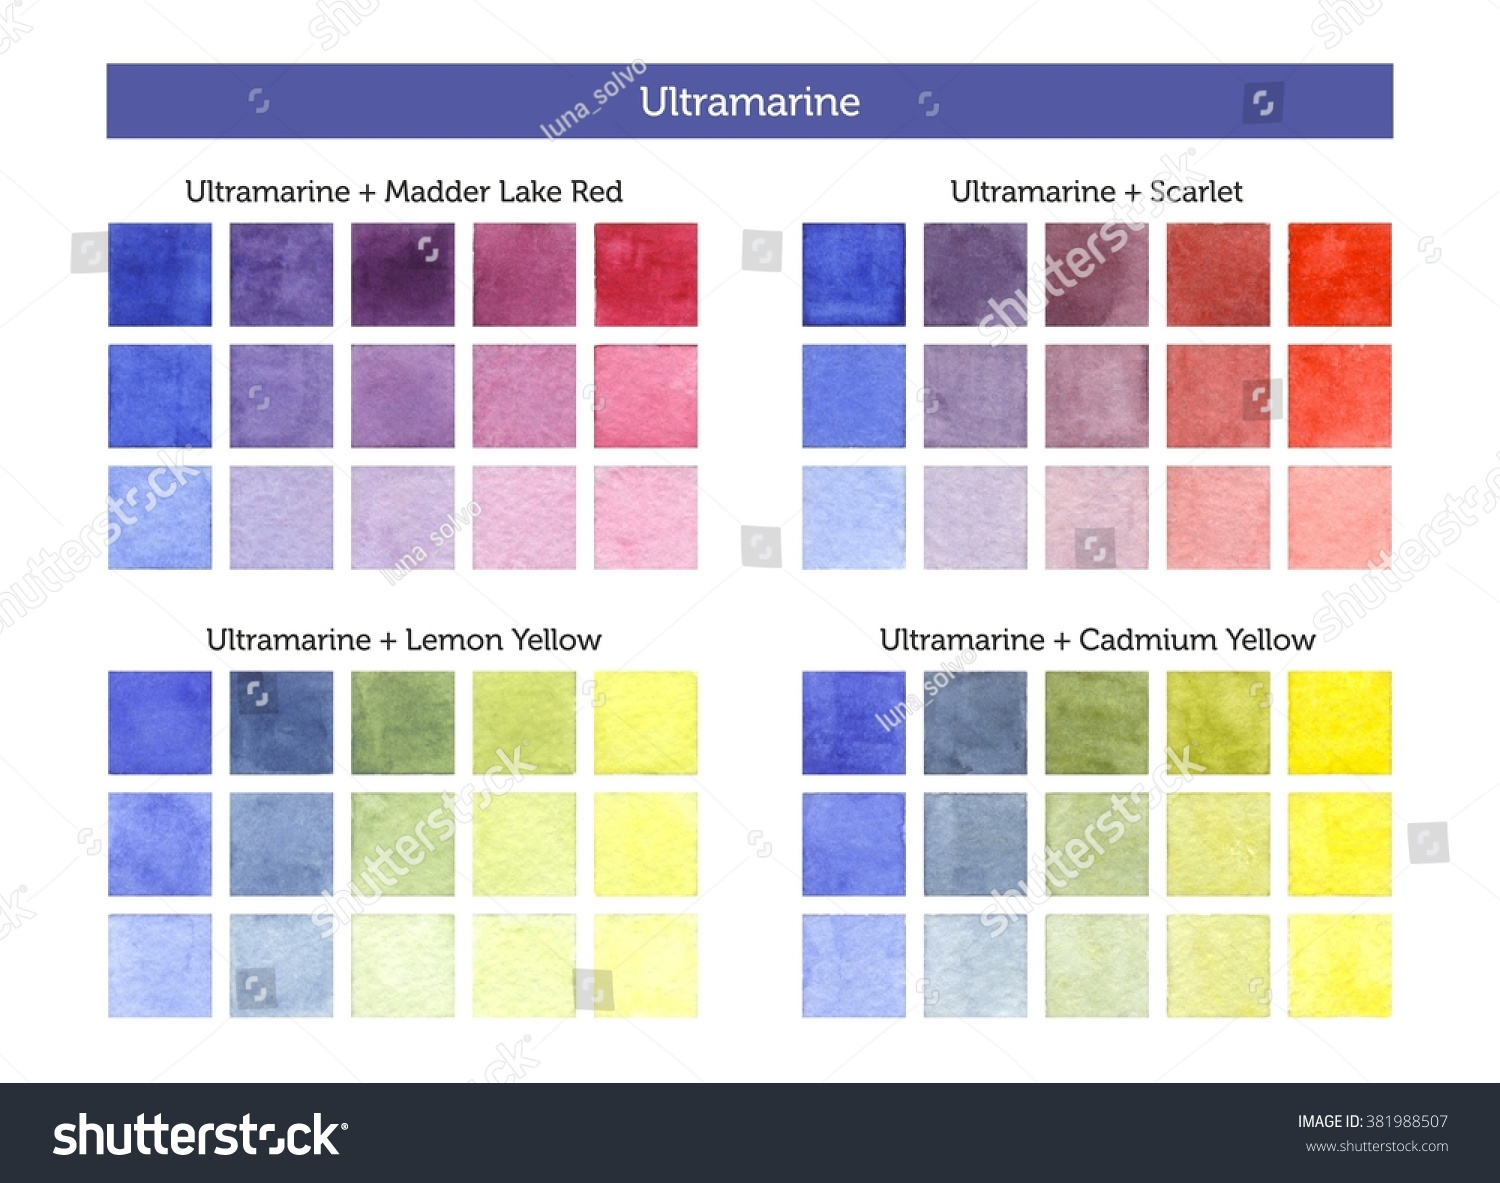 Rit fabric dye color chart images free any chart examples